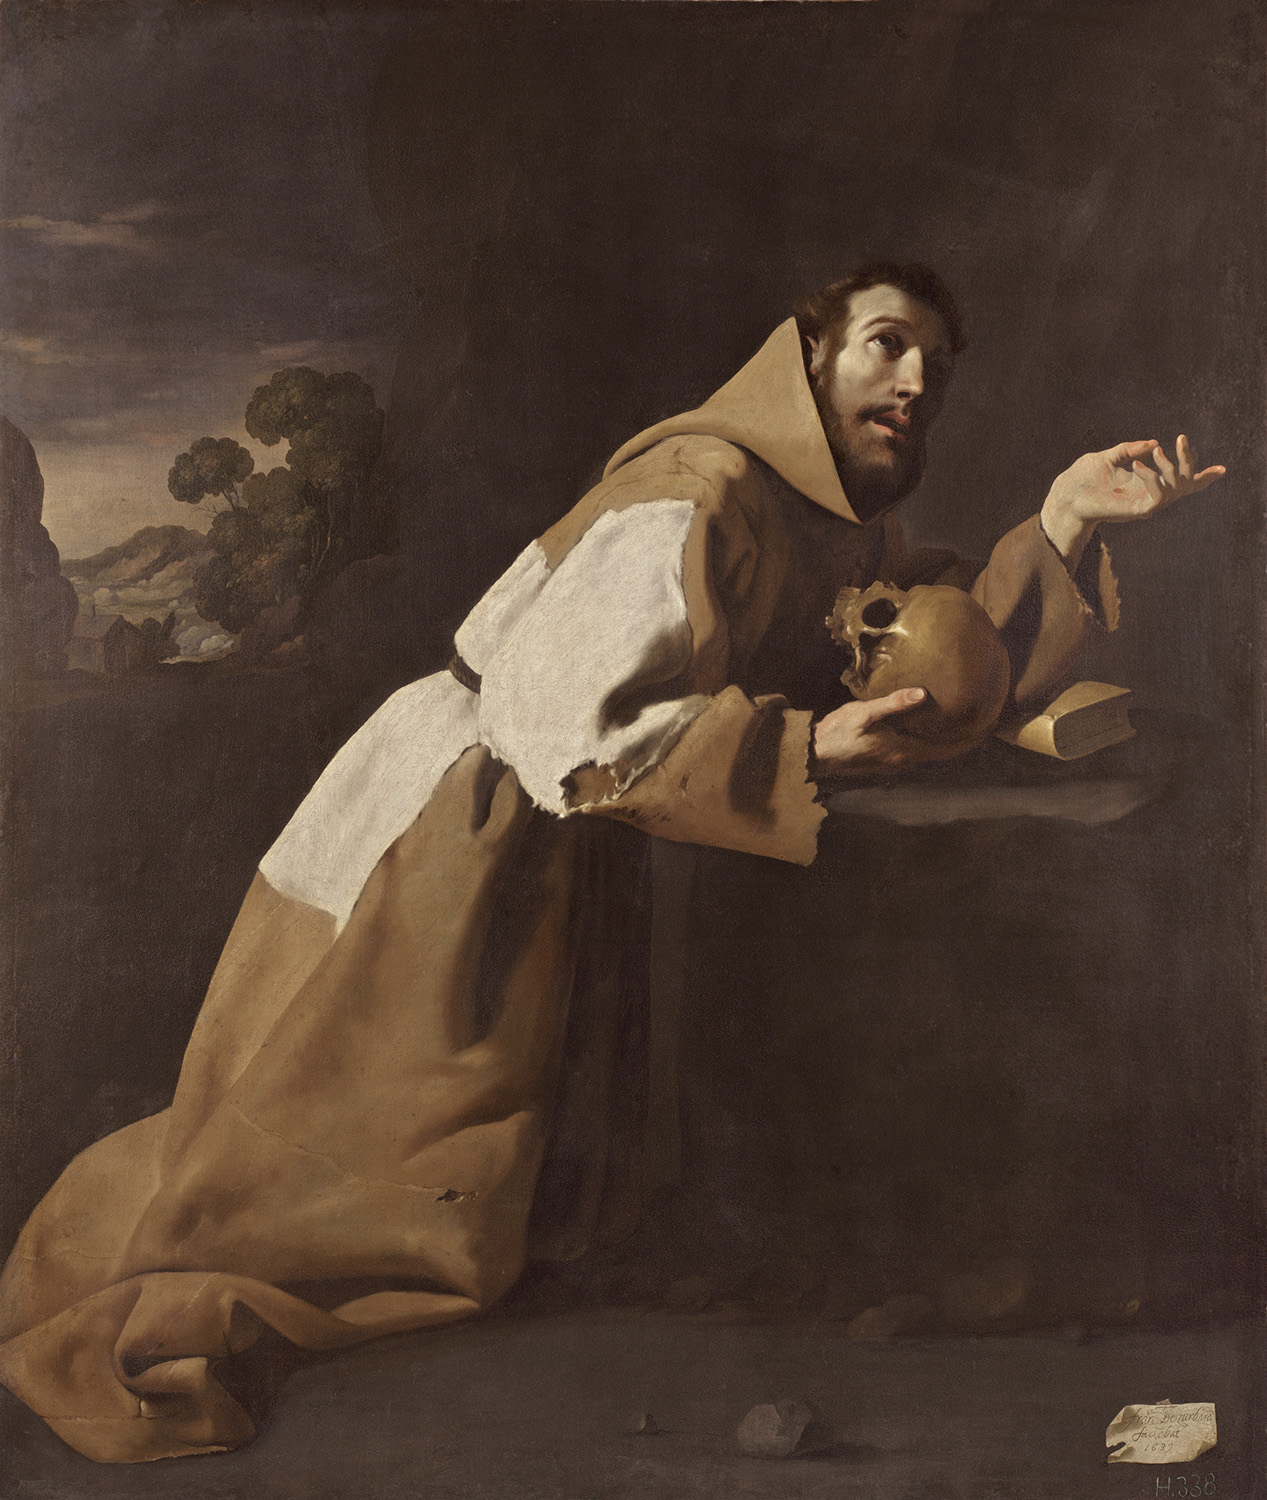 Francisco de Zurbarán - 'San Francisco en meditación', 1639, Londres, The National Gallery